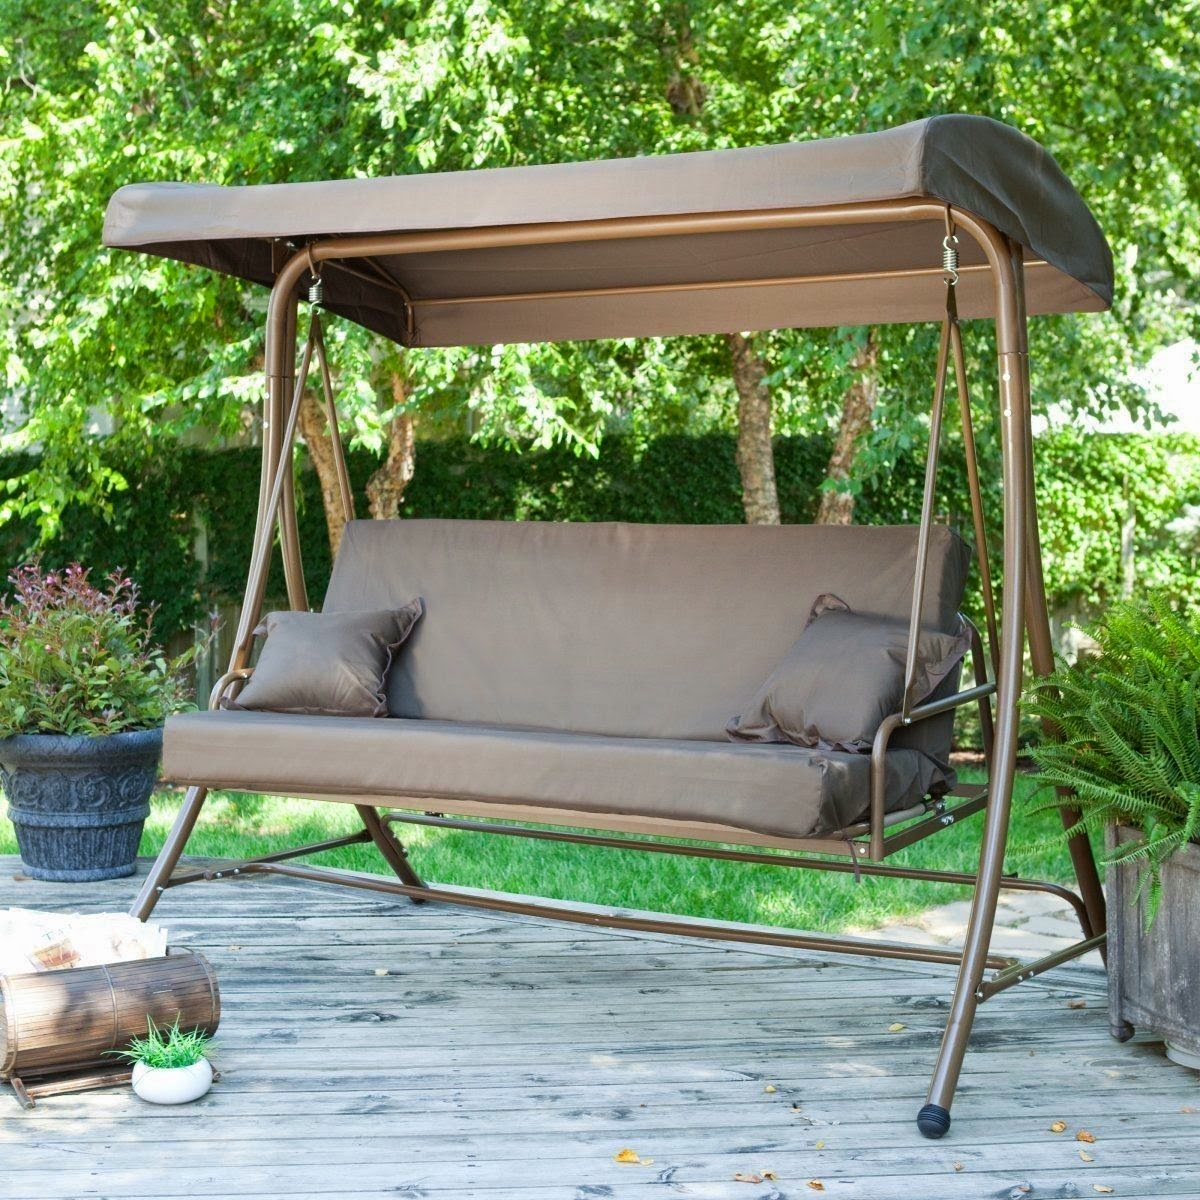 outdoor patio swing Video Search Engine at Search